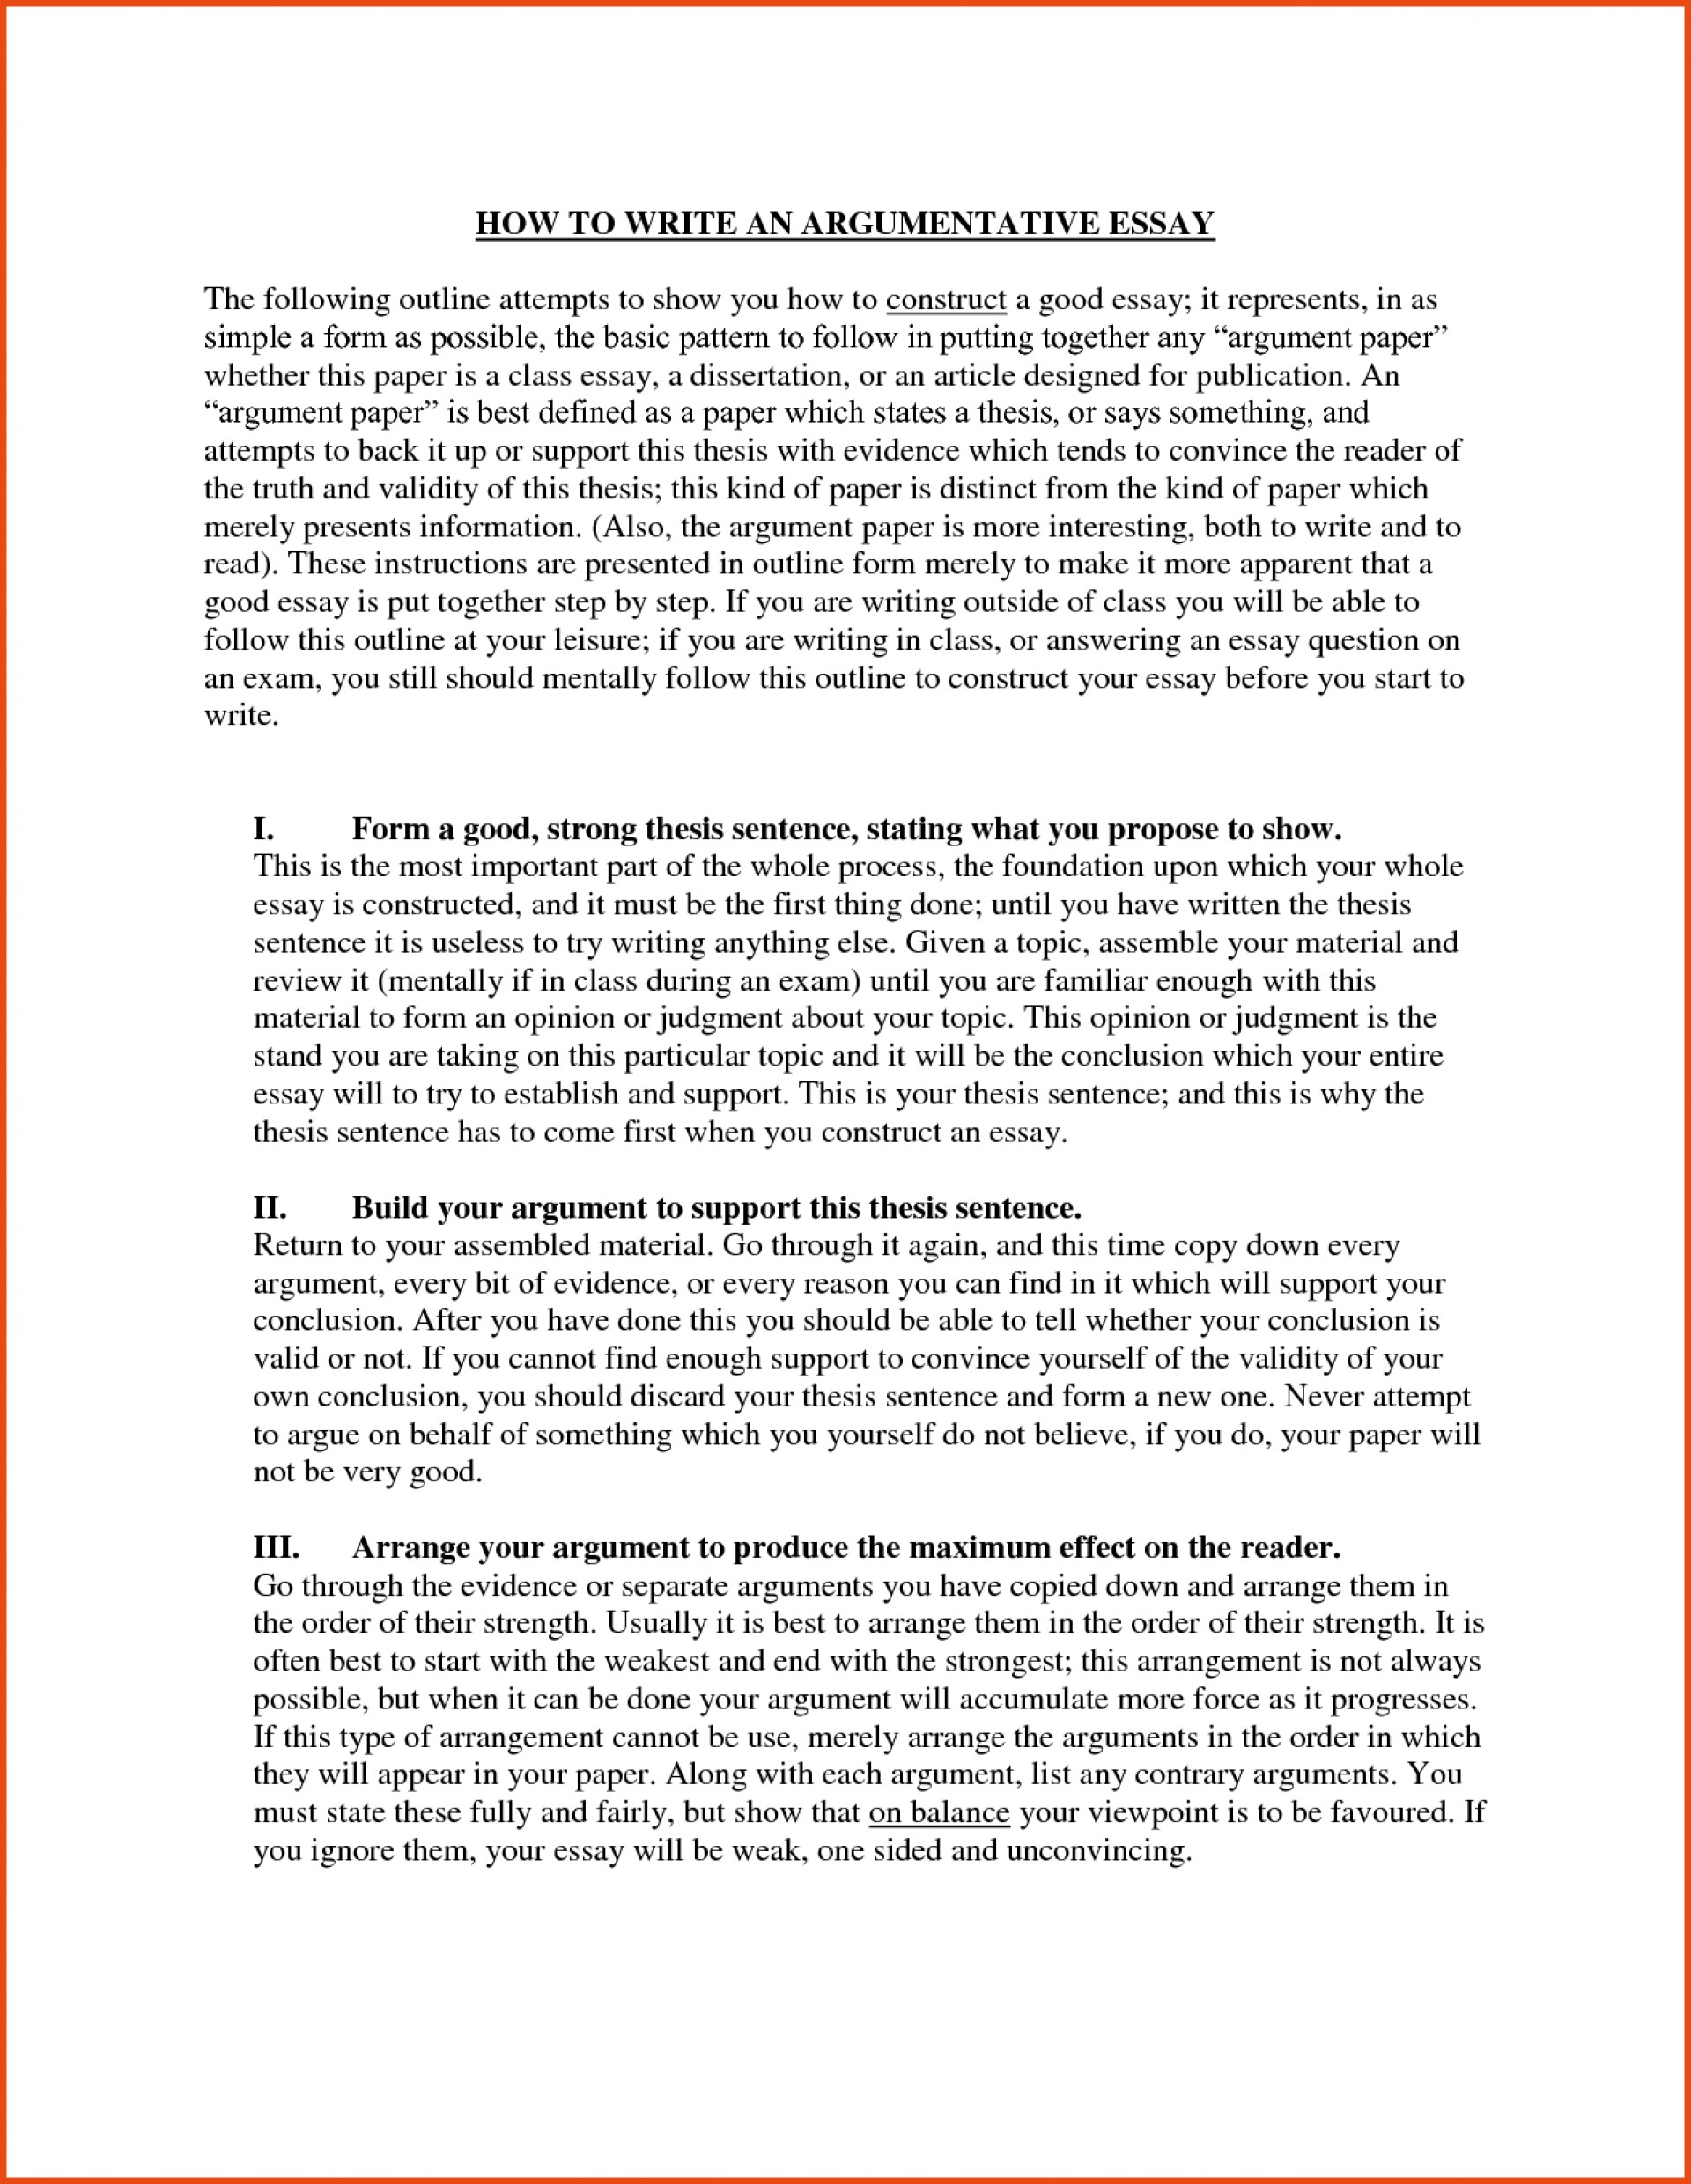 004 How To Start Good Essay Example Brilliant Ideas Of Ways An Aboutelf Dissertation Nice Photo Awesome A Sentence For College Introduction 1920